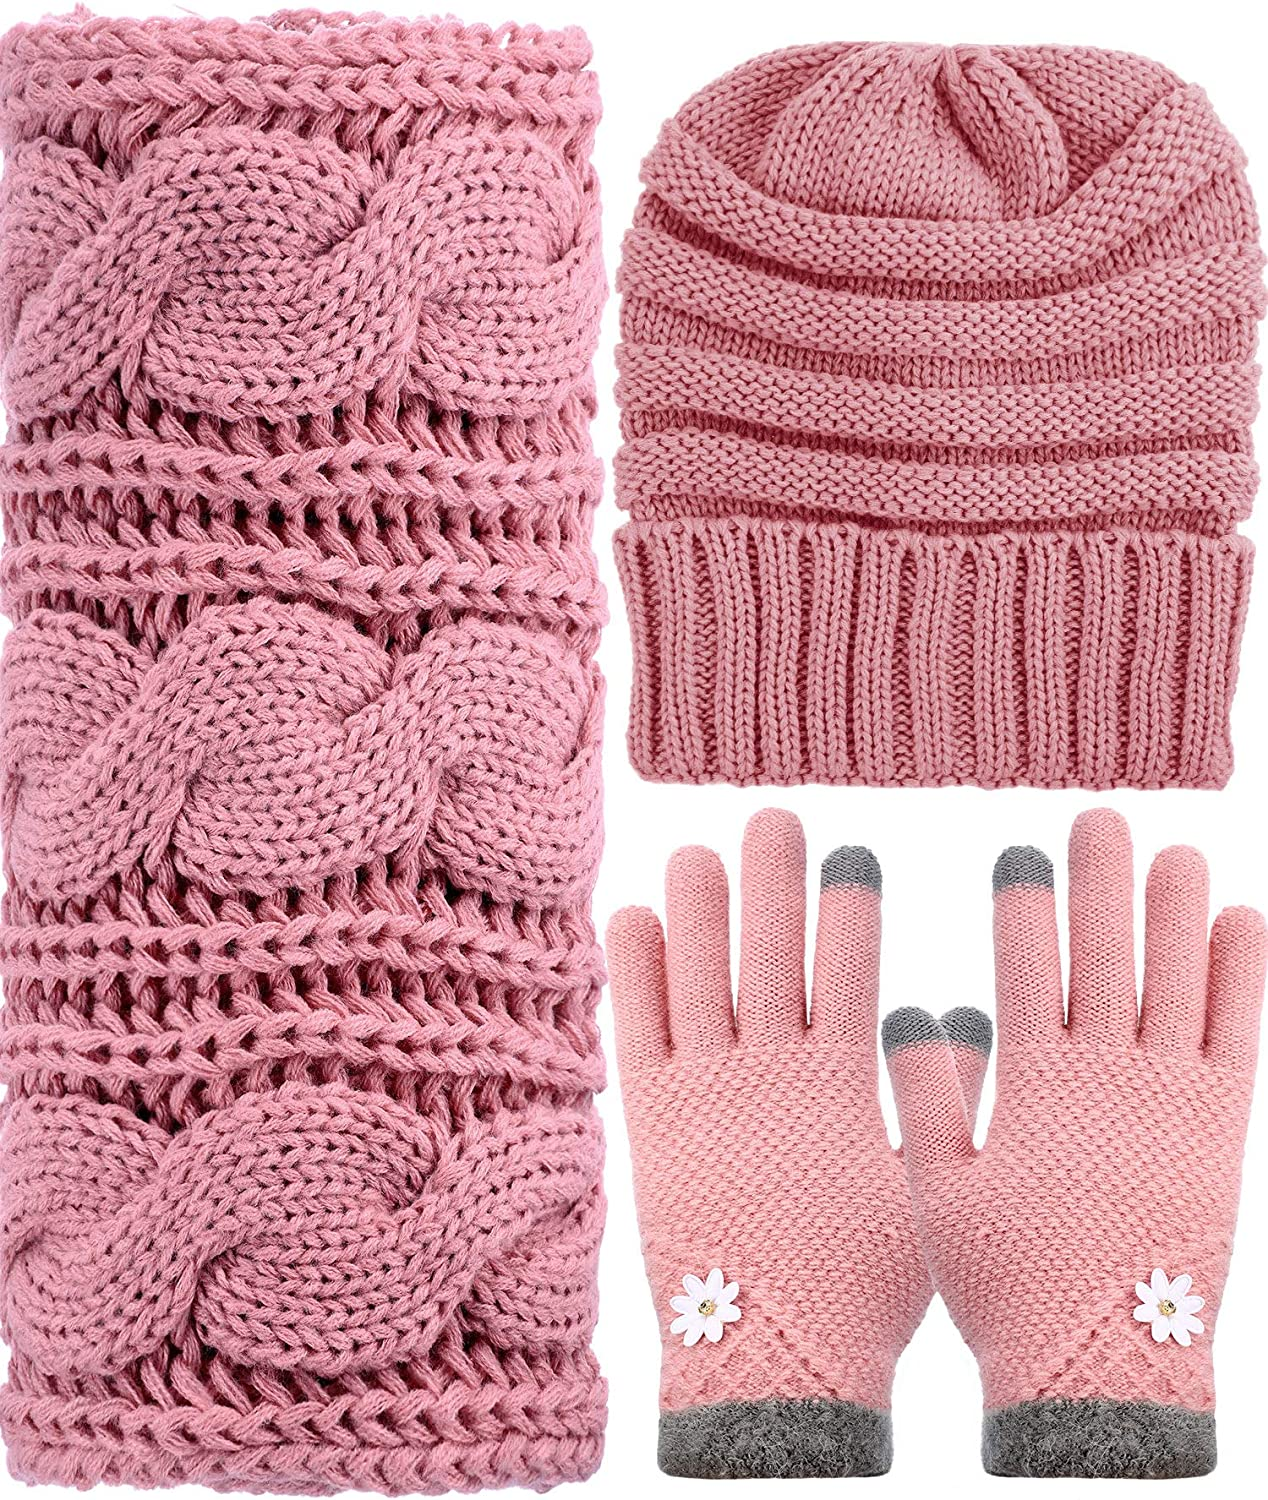 Winter Warm Max 59% OFF Knit Set - Beanie and Hat Glo Max 47% OFF Stretch Knitted Scarf